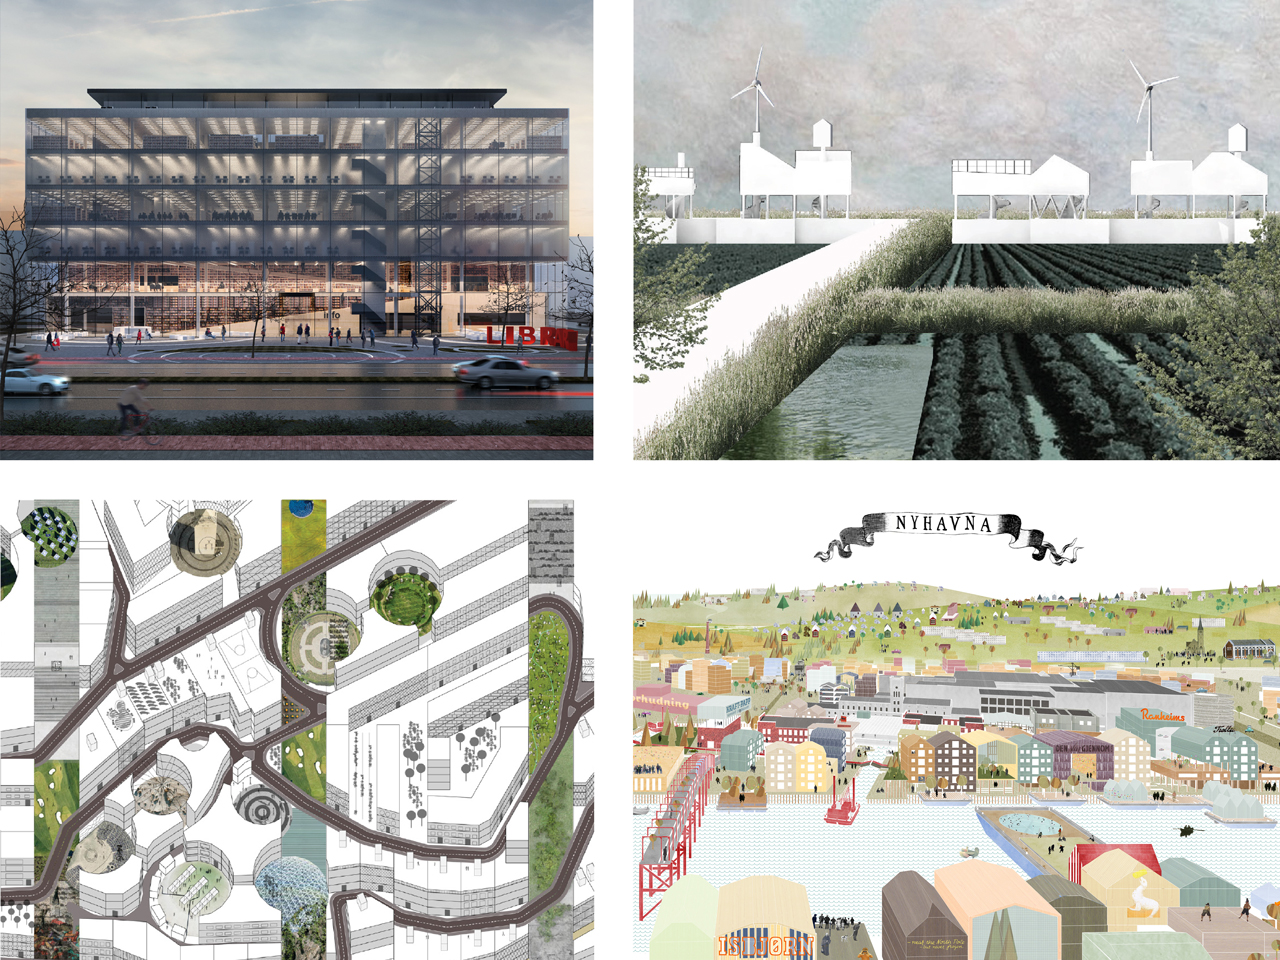 MVRDV team members win competitions across Europe